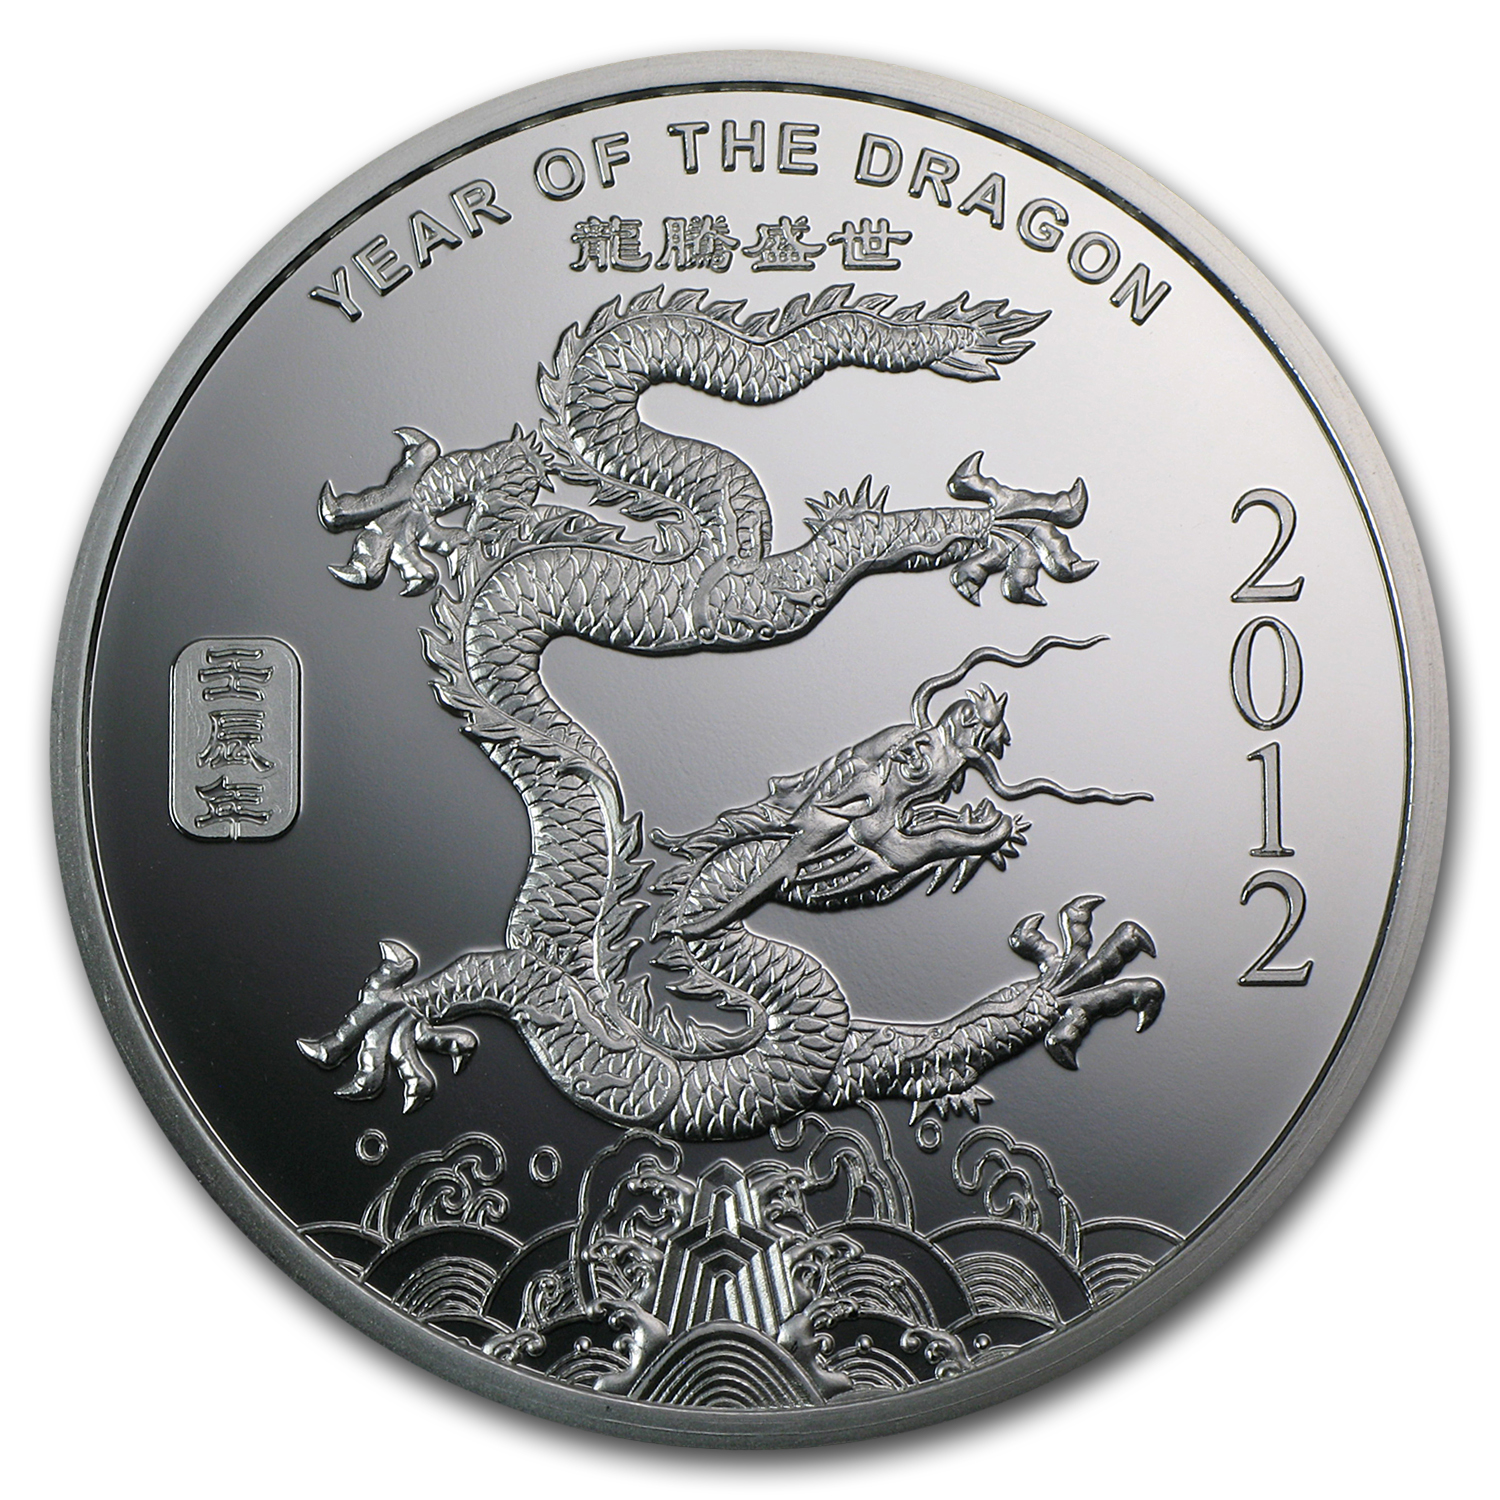 2 Oz Silver Round Apmex 2012 Year Of The Dragon 2 Oz